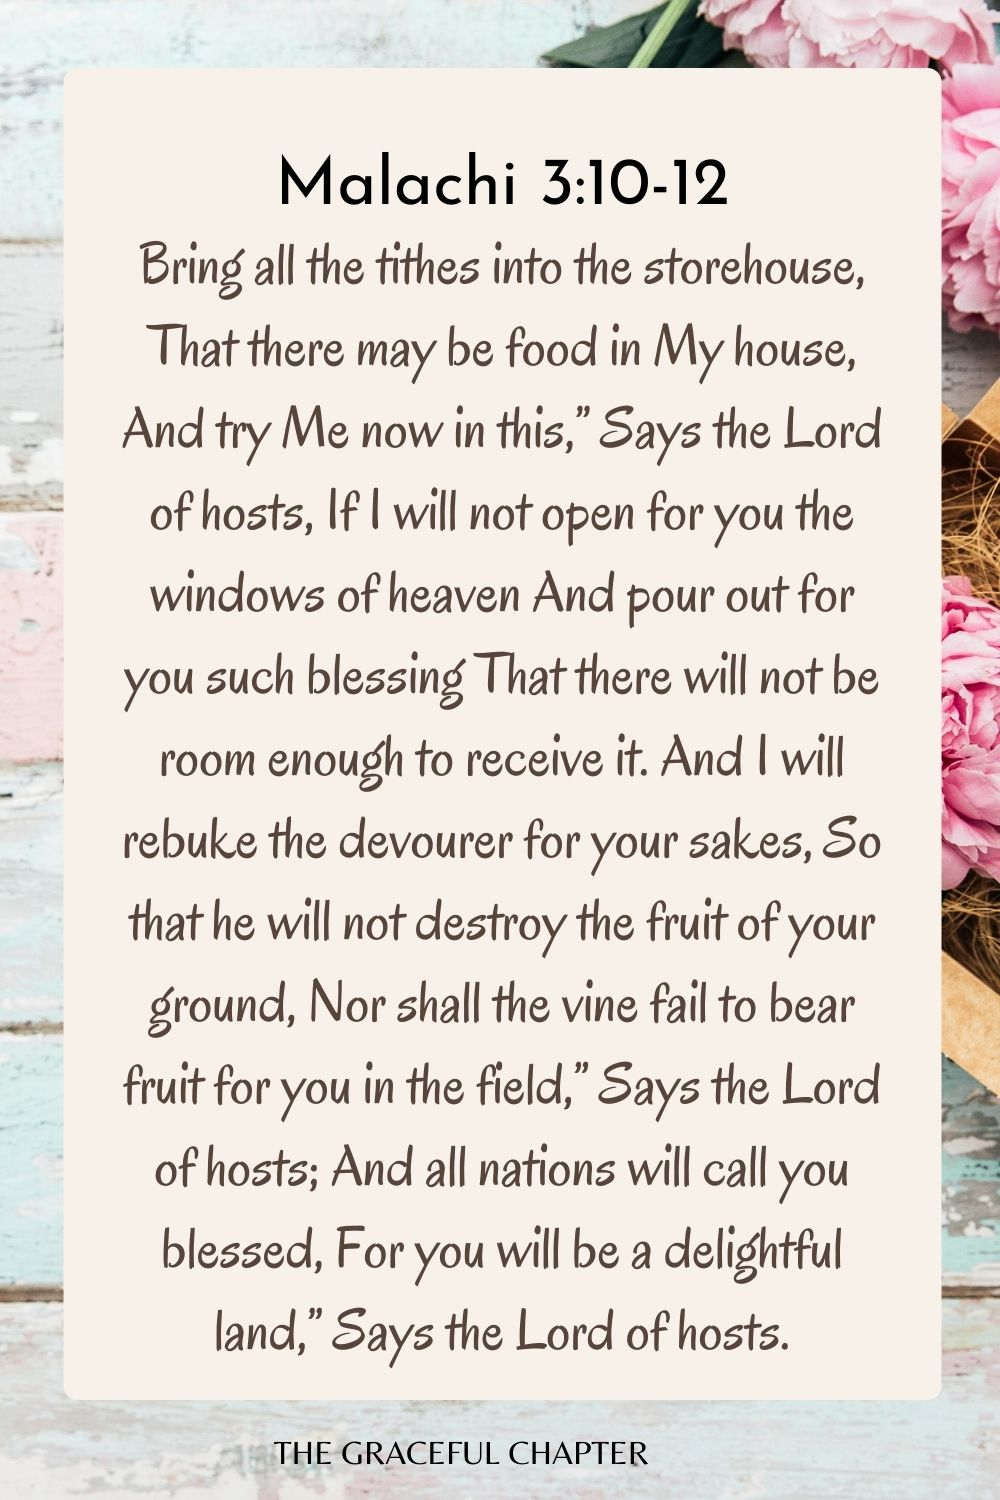 """Bring all the tithes into the storehouse, That there may be food in My house, And try Me now in this,"""" Says the Lord of hosts, If I will not open for you the windows of heaven And pour out for you such blessing That there will not be room enough to receive it. And I will rebuke the devourer for your sakes, So that he will not destroy the fruit of your ground, Nor shall the vine fail to bear fruit for you in the field,"""" Says the Lord of hosts; And all nations will call you blessed, For you will be a delightful land,"""" Says the Lord of hosts. Malachi 3:10-12"""